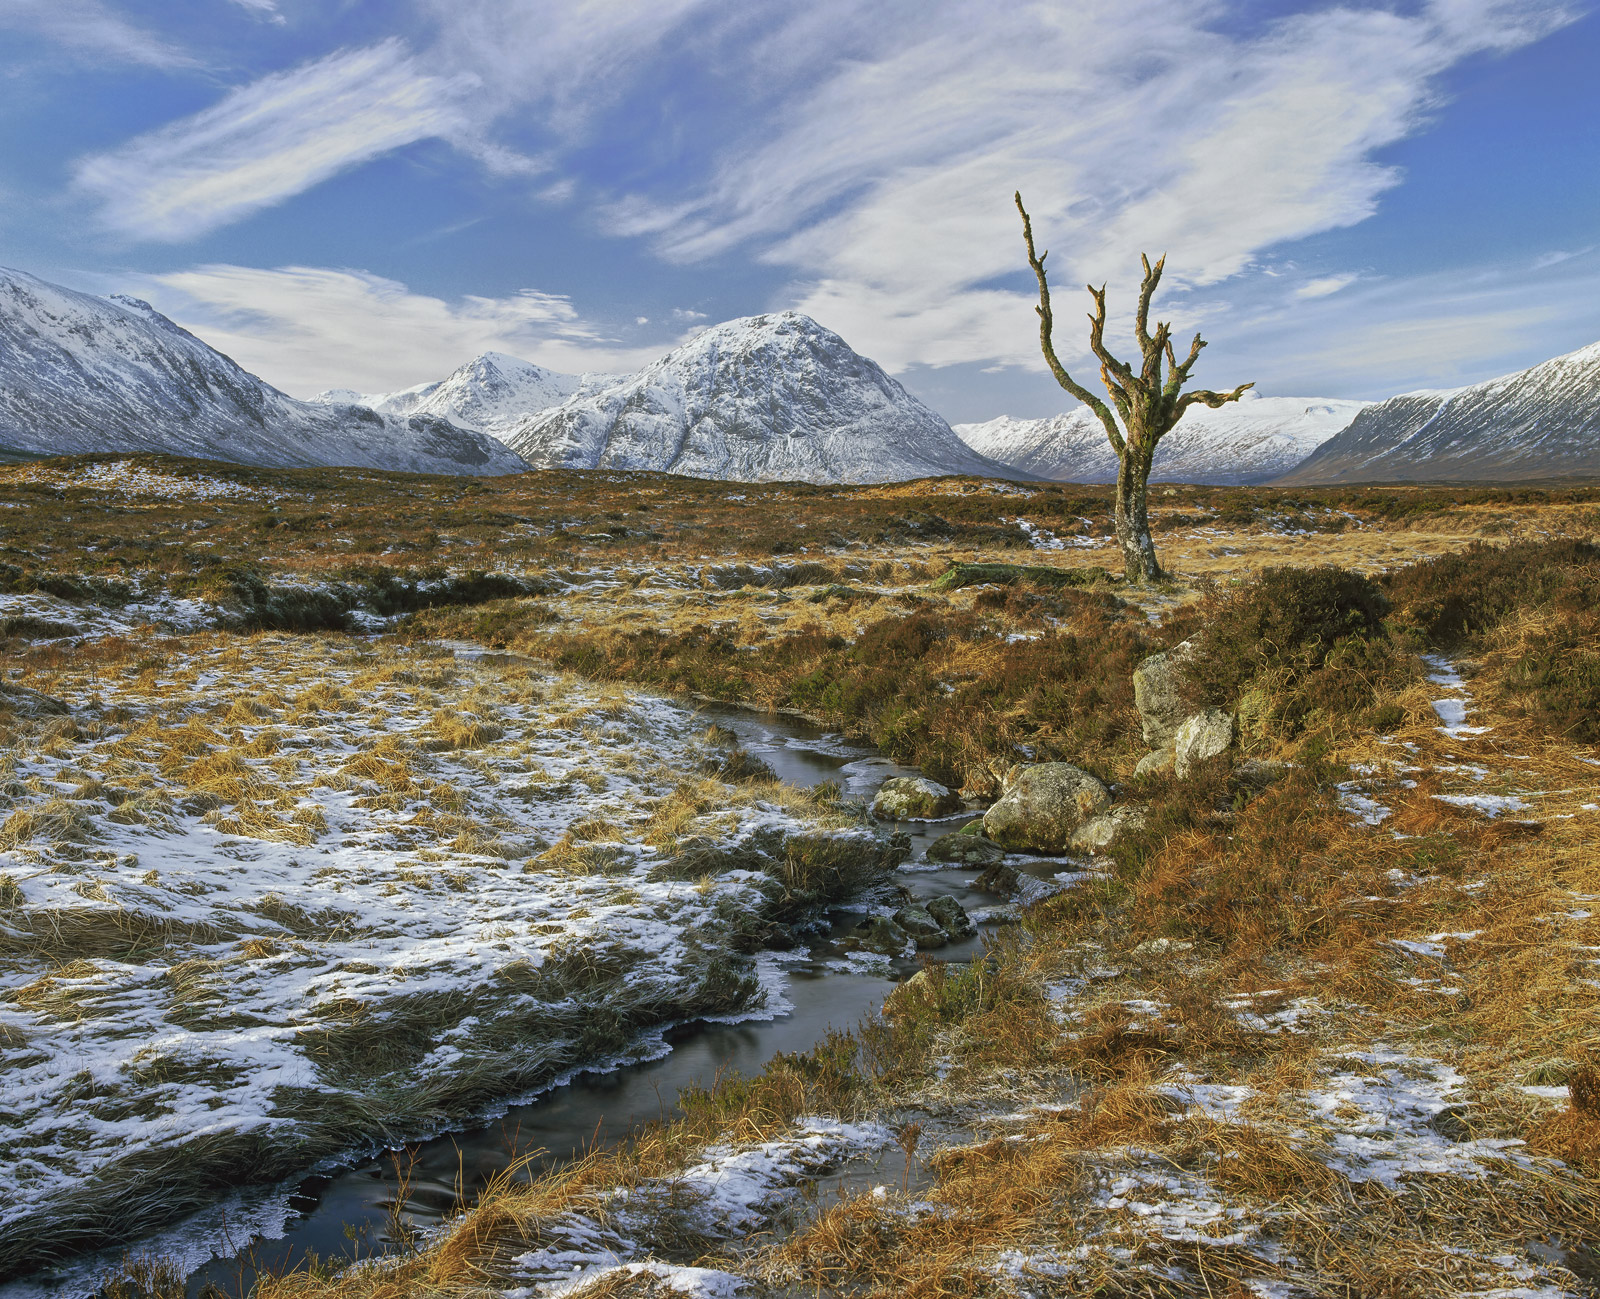 This lonely old tree is gradually losing its limbs and becoming ever more stunted. It stands proud and completely isolated...